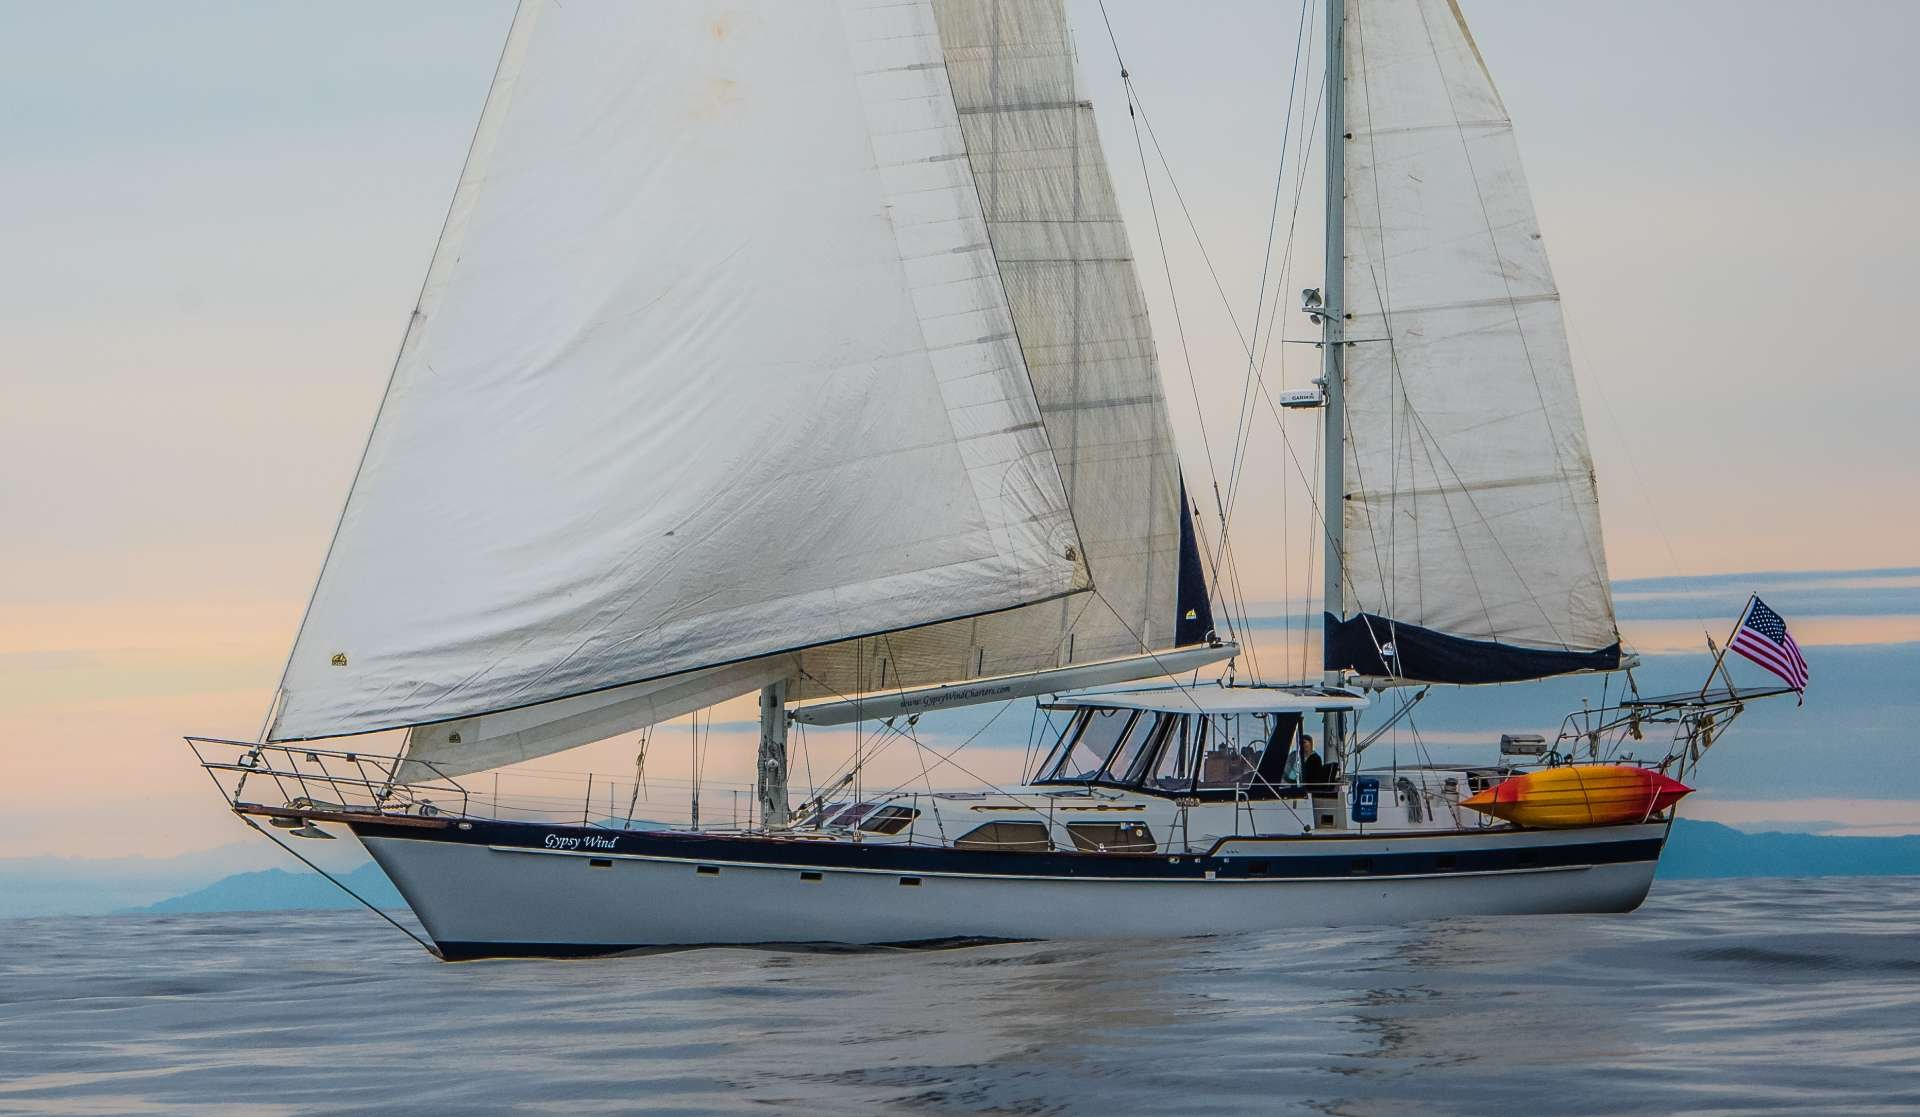 Sailing Yacht 'GYPSY WIND', 6 PAX, 2 Crew, 72.00 Ft, 21.00 Meters, Built 1990, Irwin, Refit Year 2018